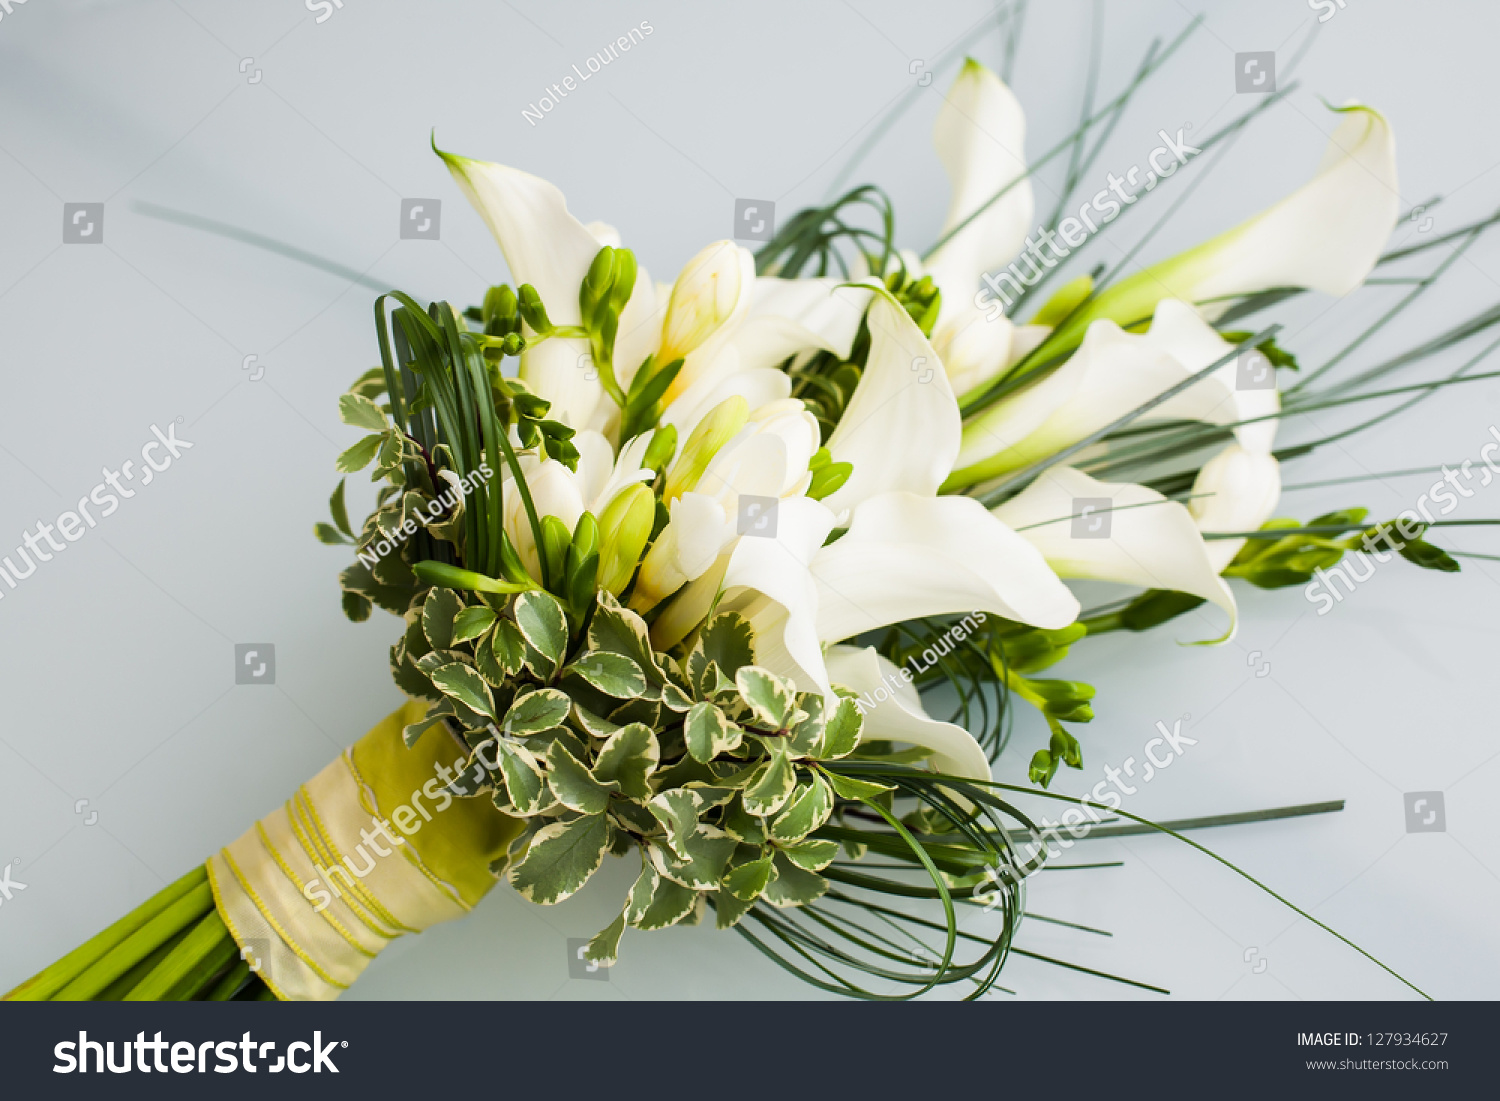 Big flower bouquet filled cala lillies stock photo edit now a big flower bouquet filled with cala lillies and other plants izmirmasajfo